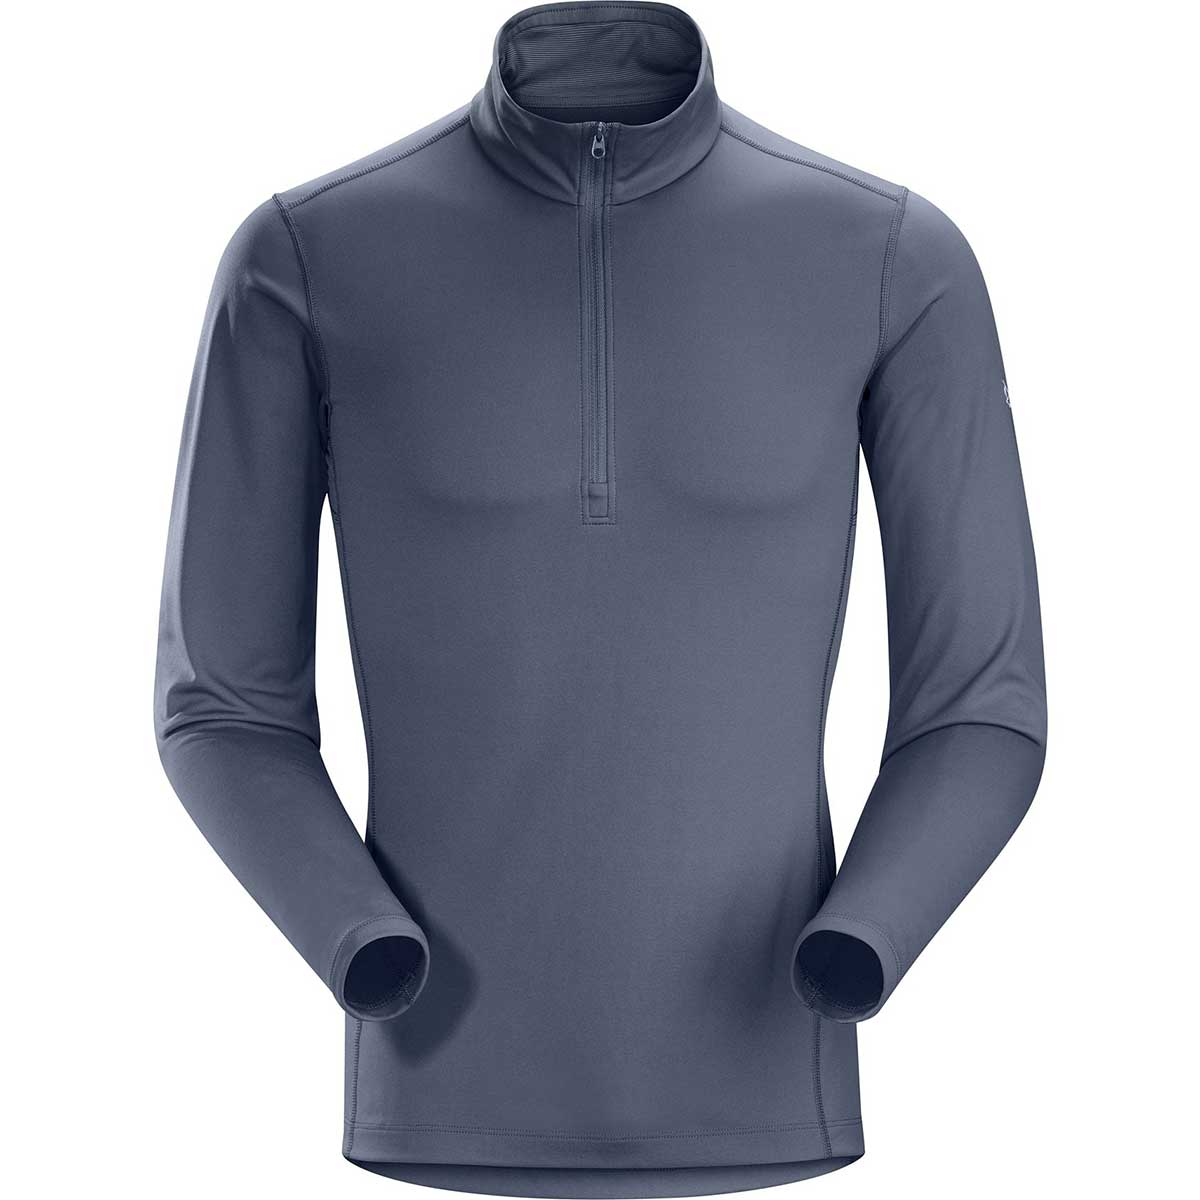 Arcteryx men's Phase AR Zip Neck Top in Proteus front view